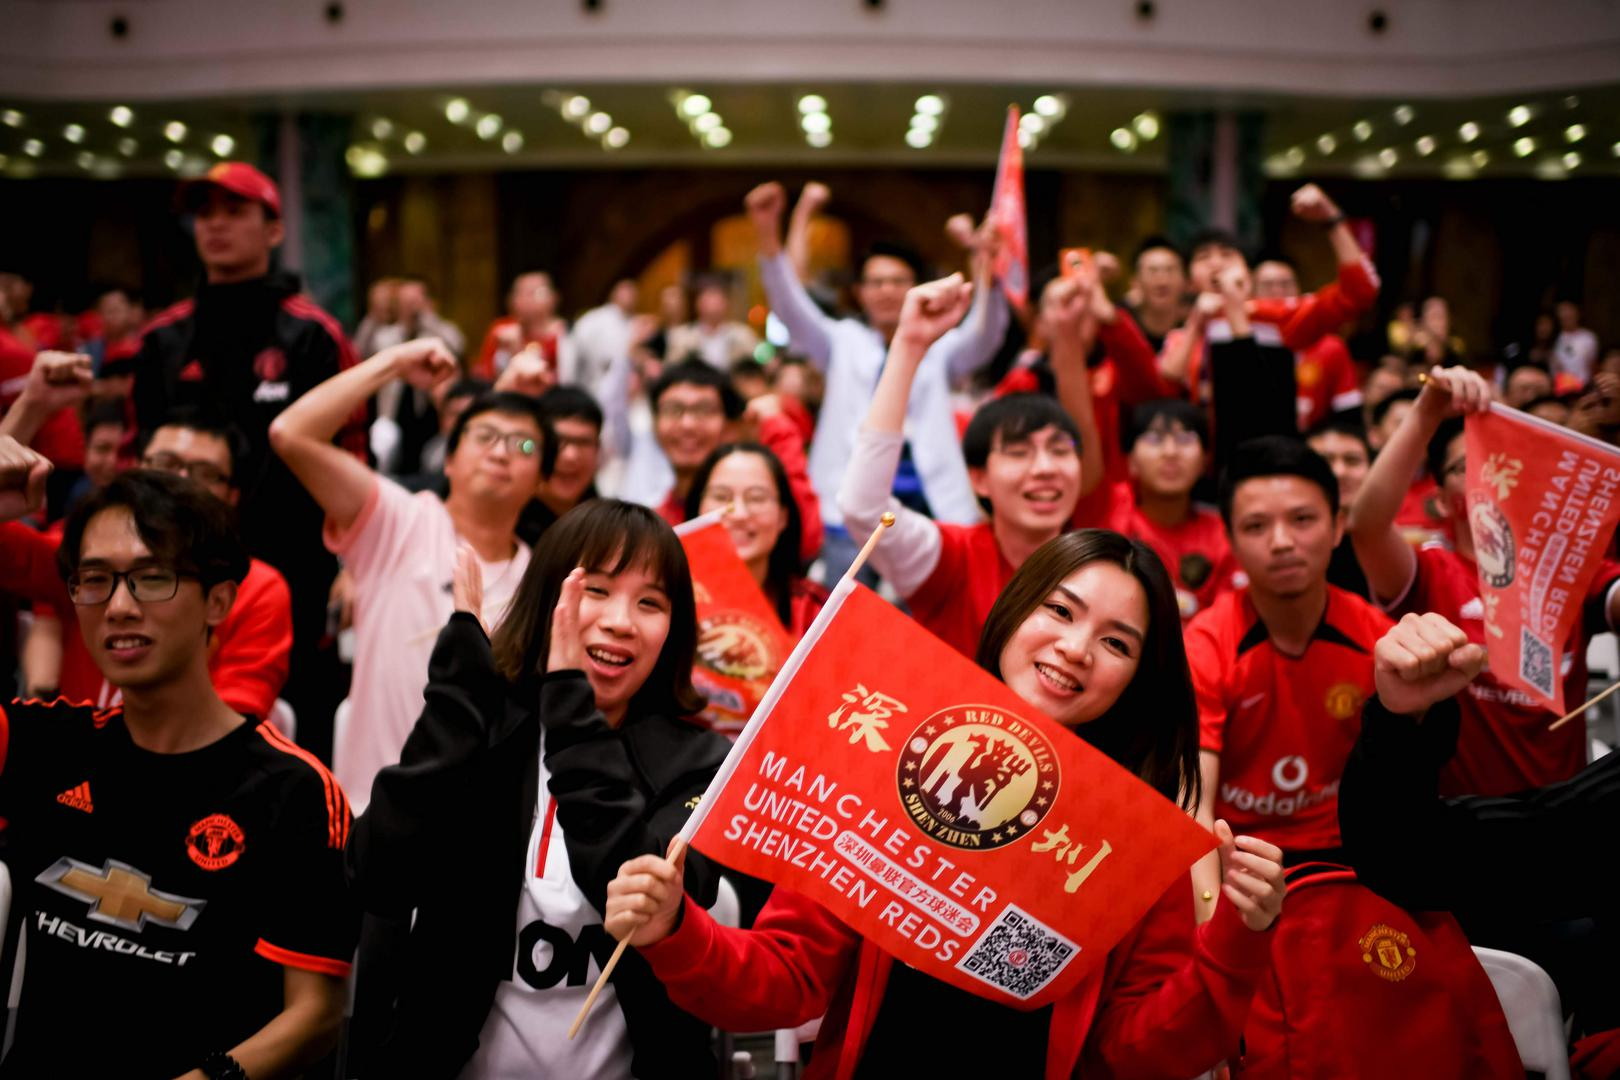 United fans at I Love United event in Shenzhen.